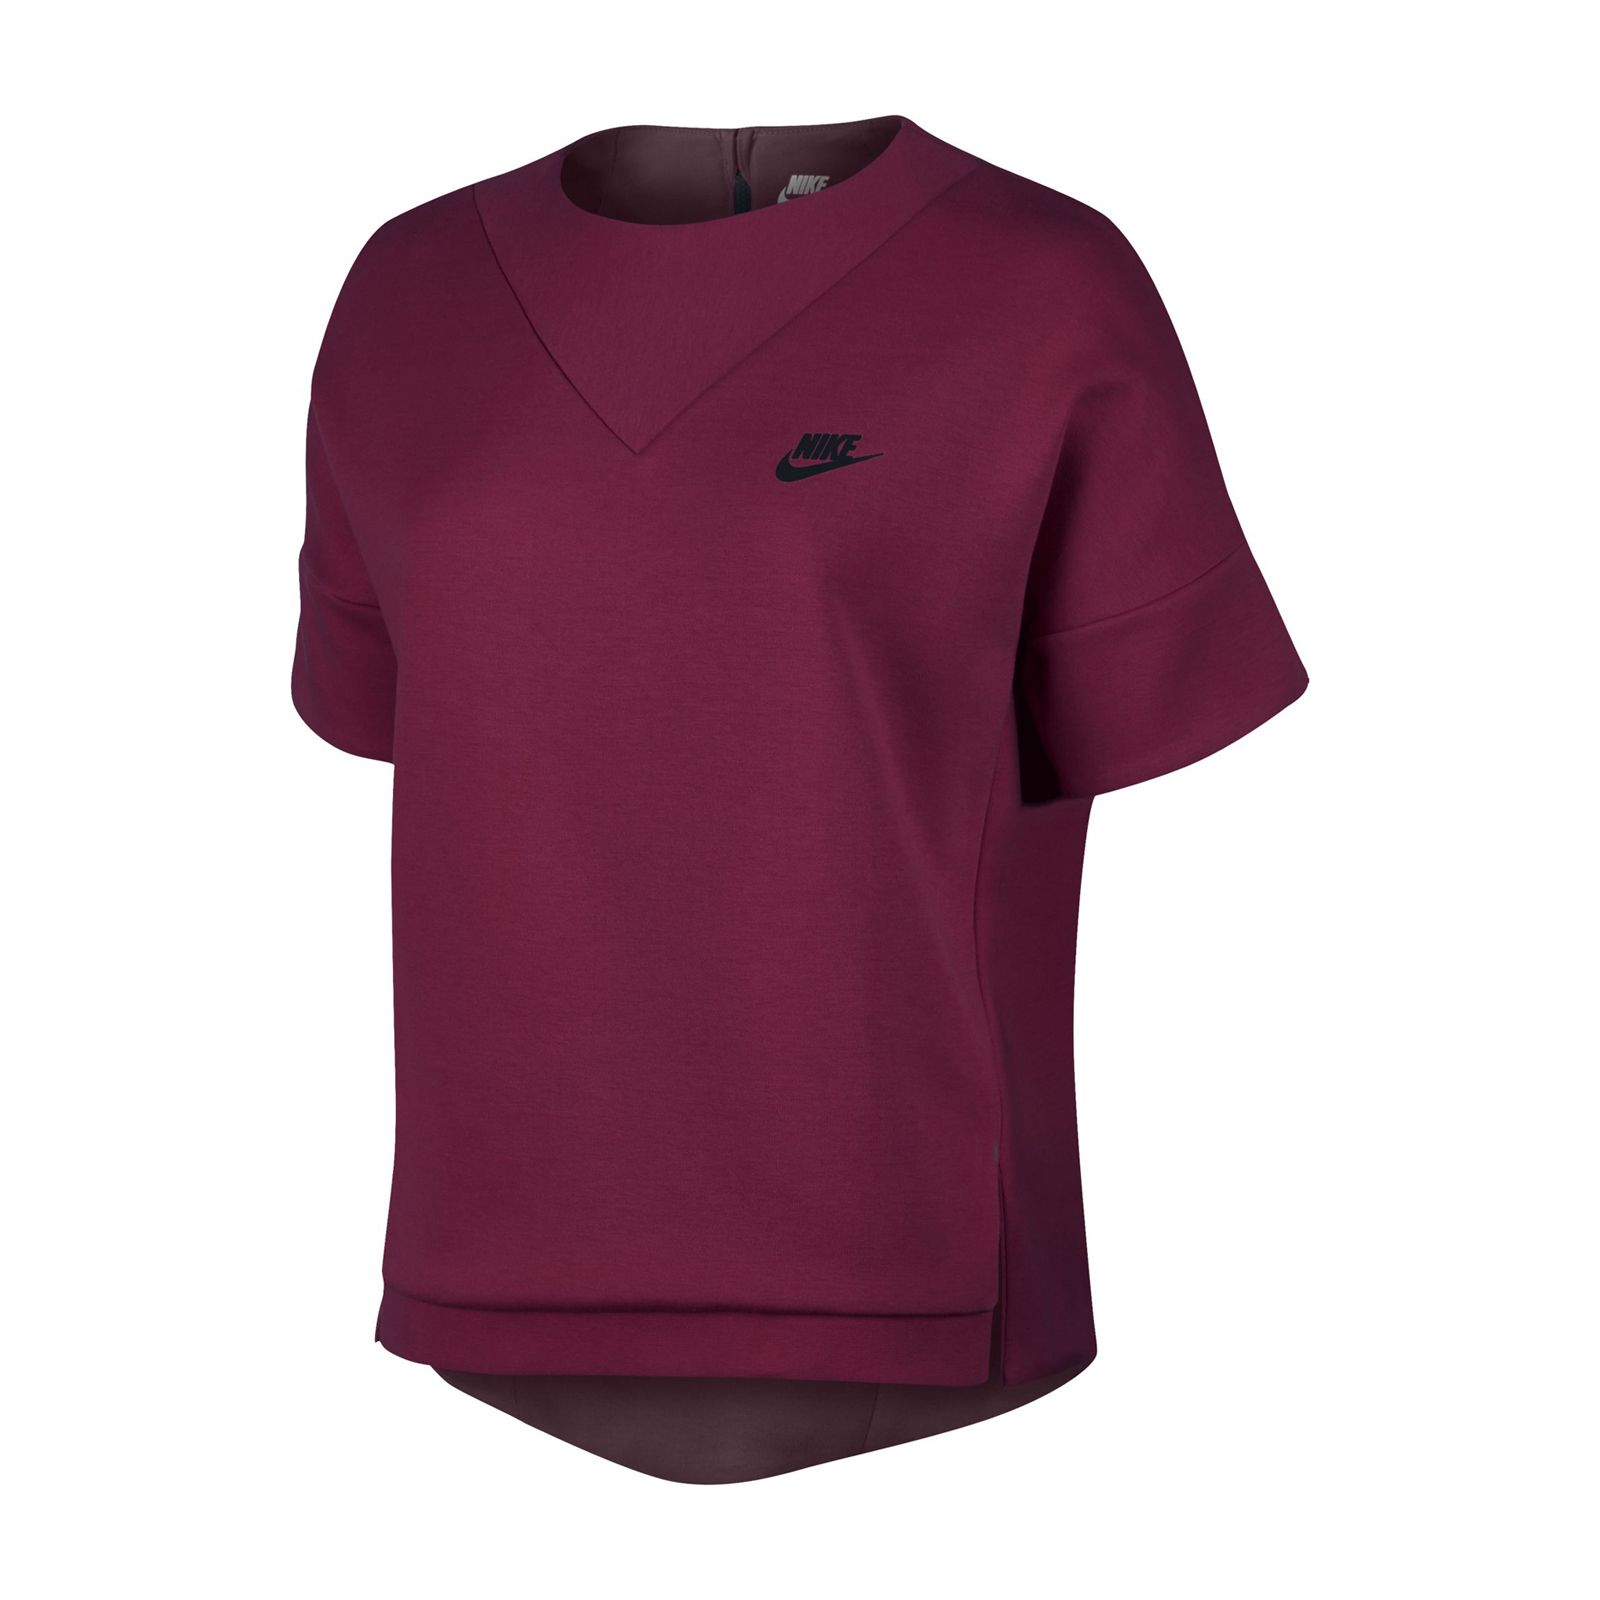 nike tech fleece crew t shirt manches courtes bordeaux brandalley. Black Bedroom Furniture Sets. Home Design Ideas